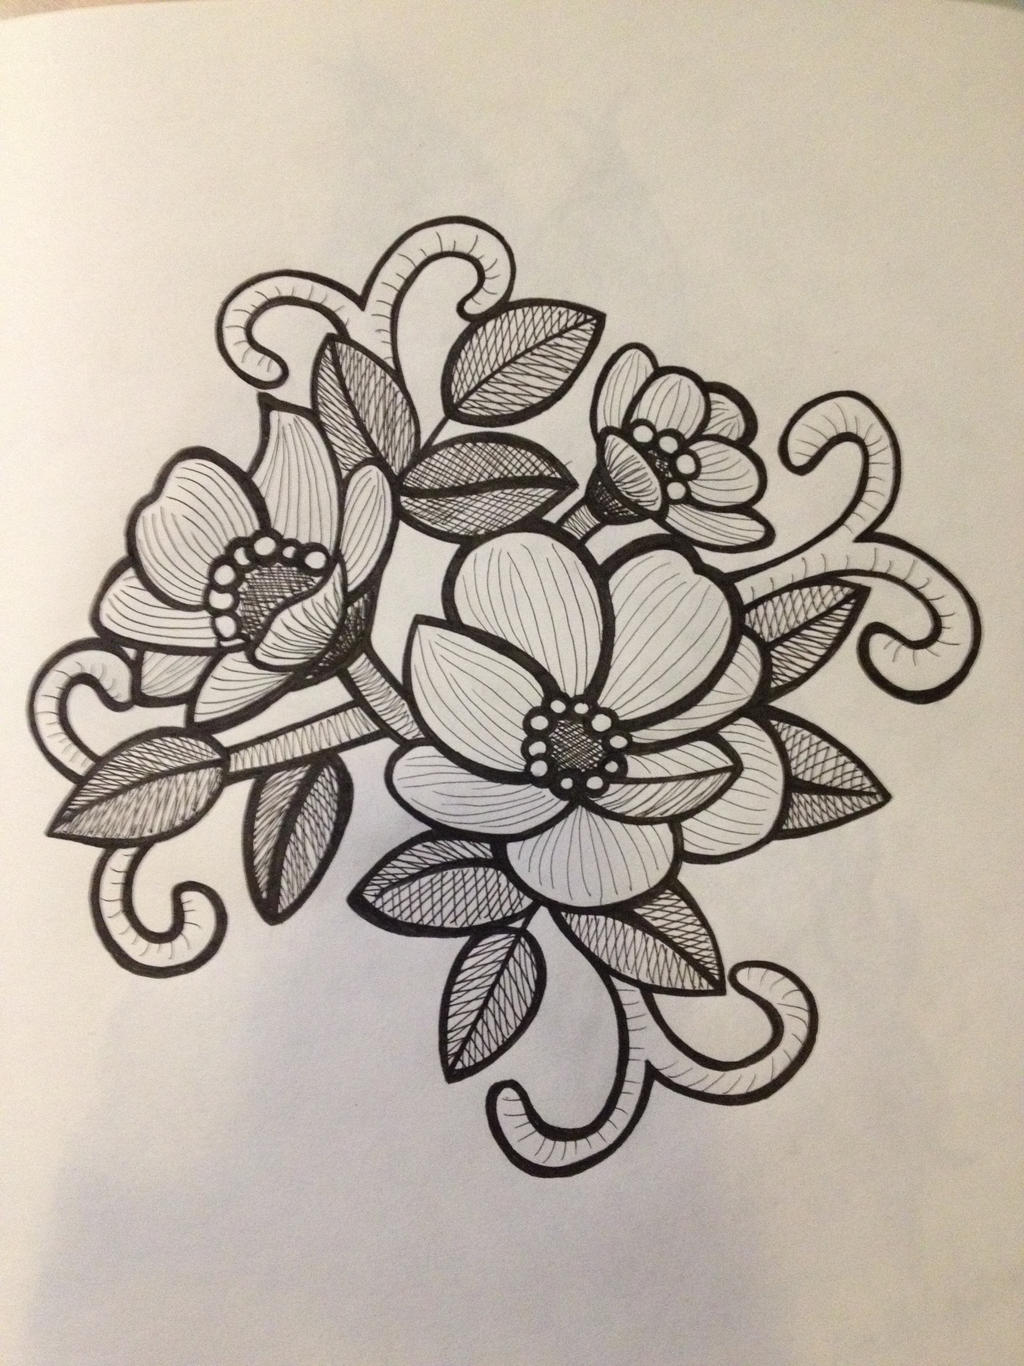 Flower Bouquet Line Drawing : Flower bouquet drawing by stylsvig on deviantart